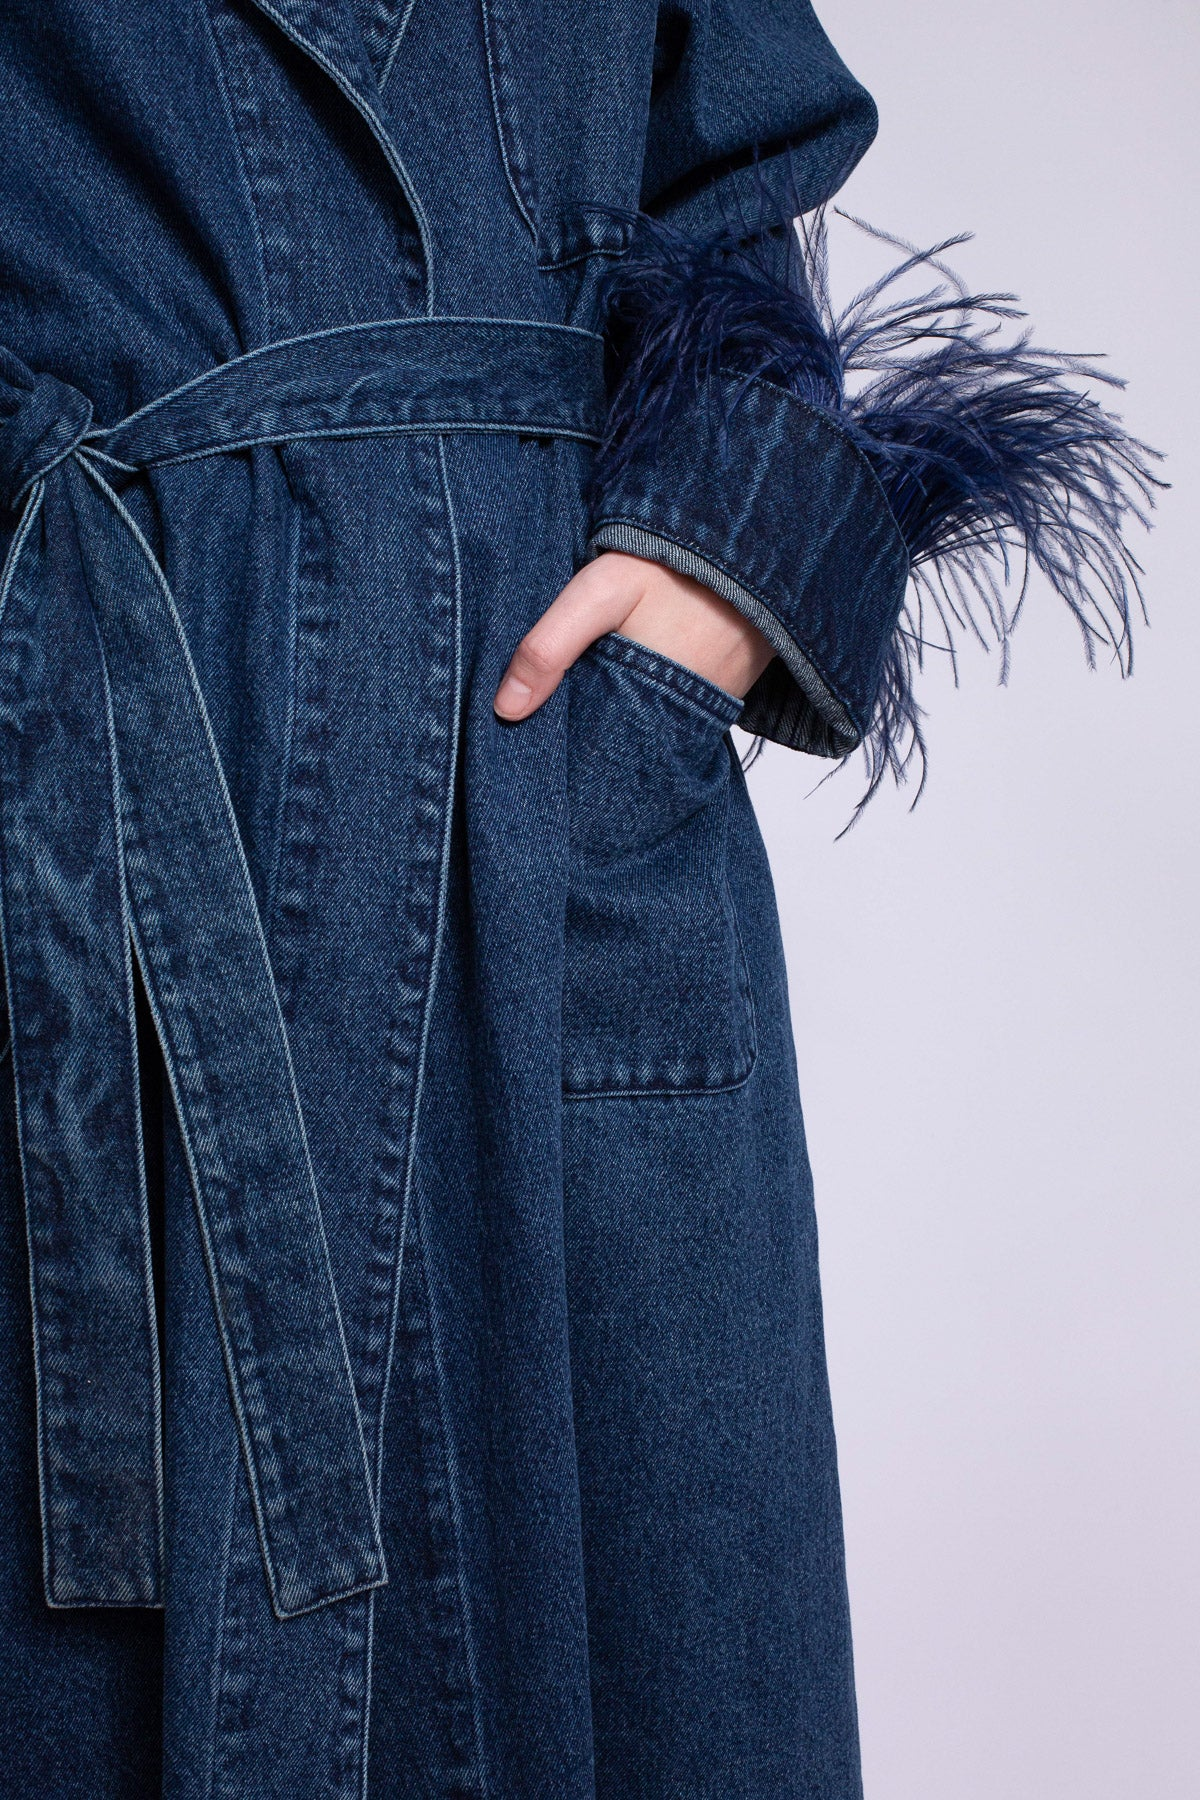 DRESSING GOWN STYLE COAT IN BLUE DENIM - marques-almeida-dev